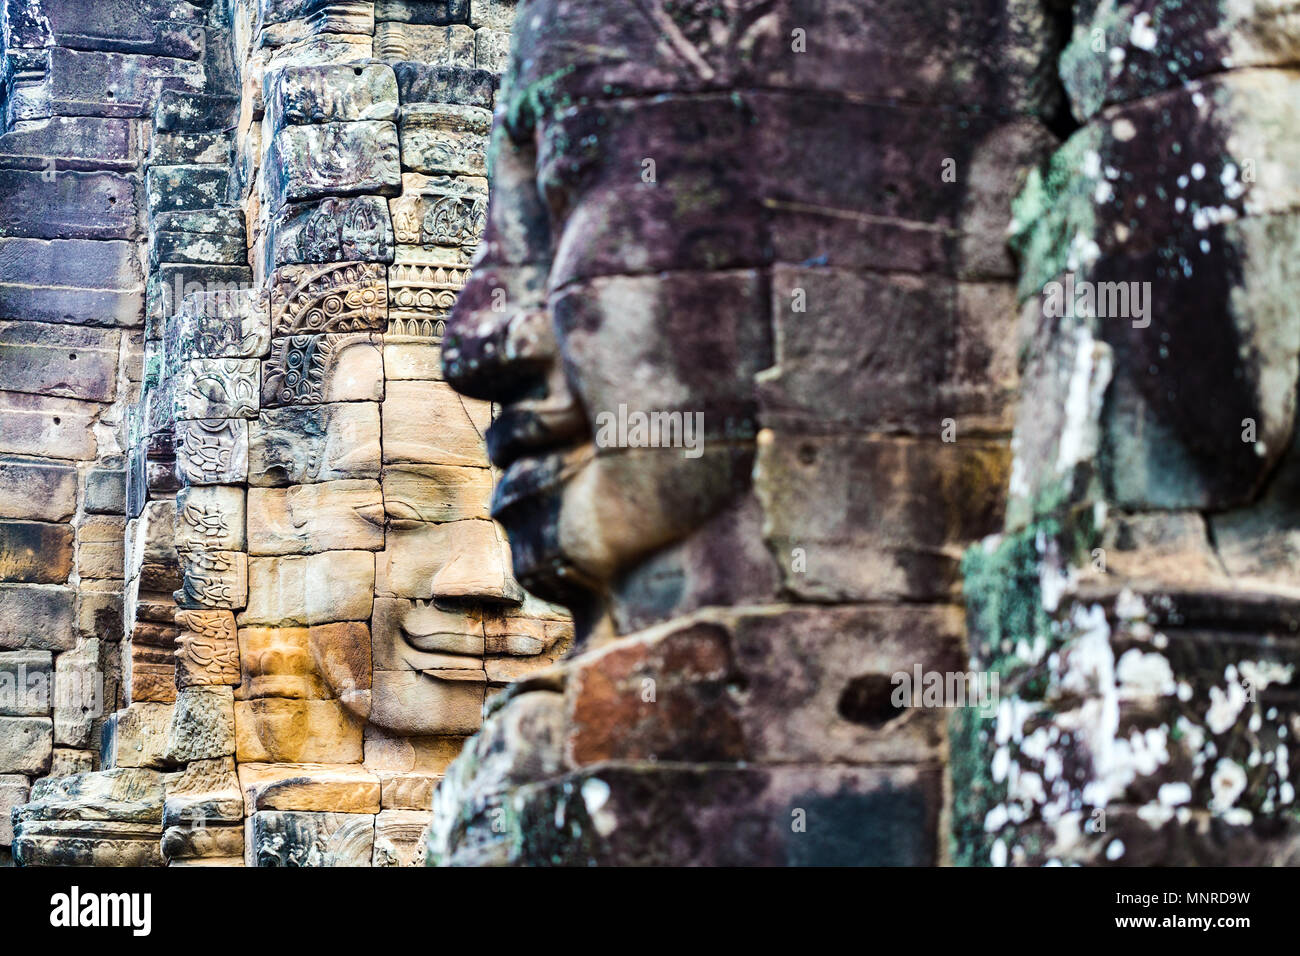 Les visages de l'ancien temple Bayon attraction touristique populaire à Angkor Thom, Siem Reap, Cambodge. Photo Stock